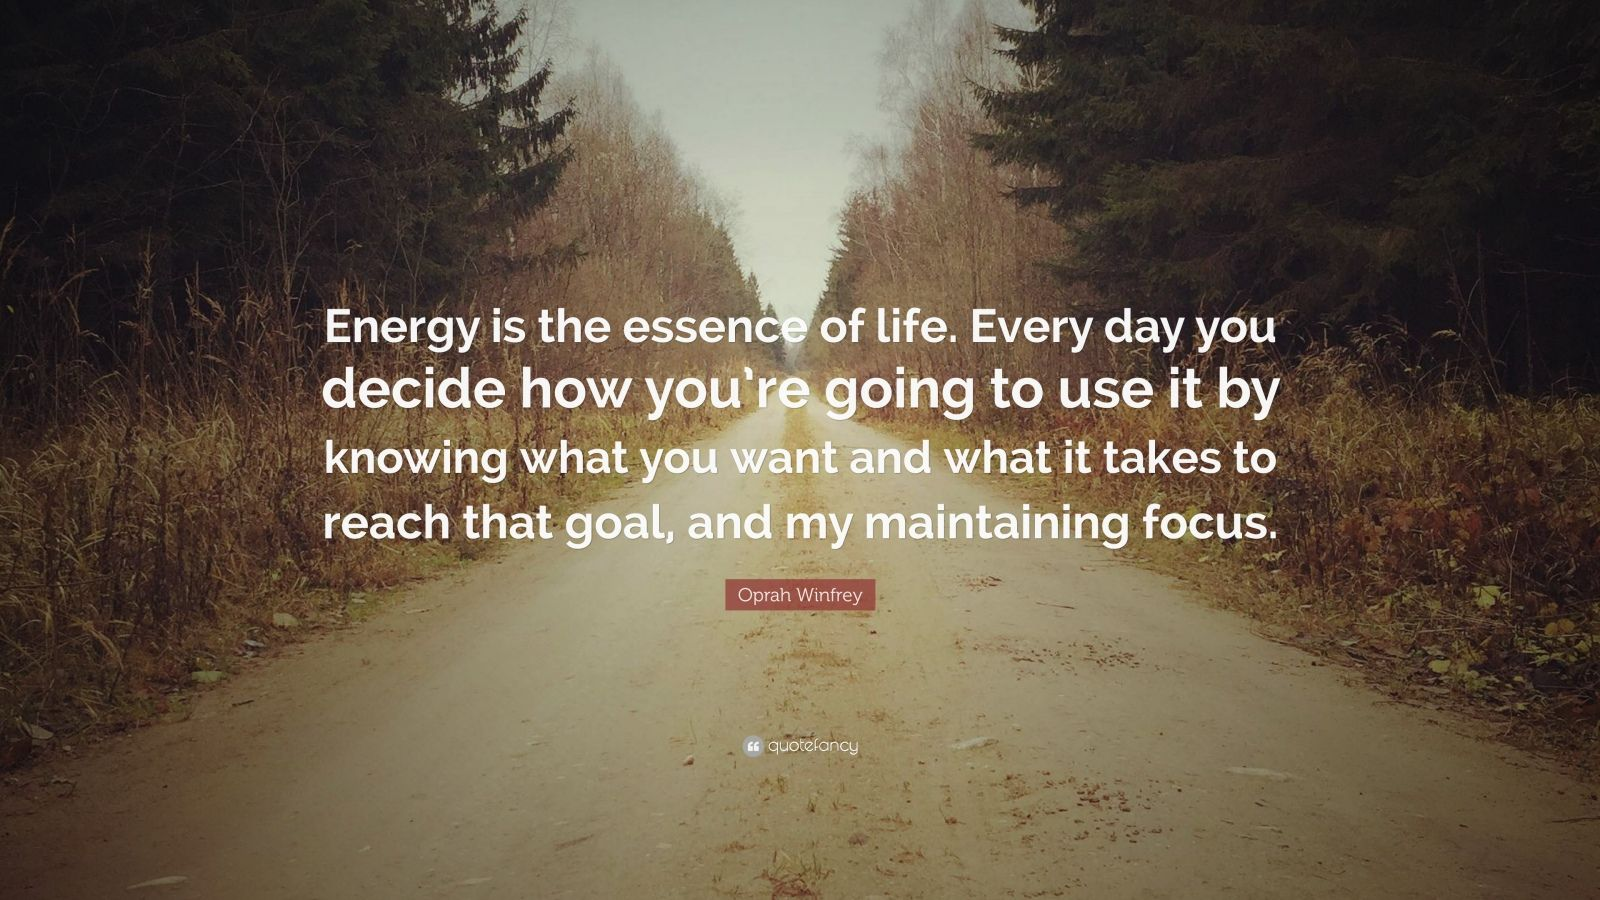 """Oprah Winfrey Quote: """"Energy is the essence of life. Every day you decide how you're going to use it by knowing what you want and what it takes to reach that goal, and my maintaining focus."""""""